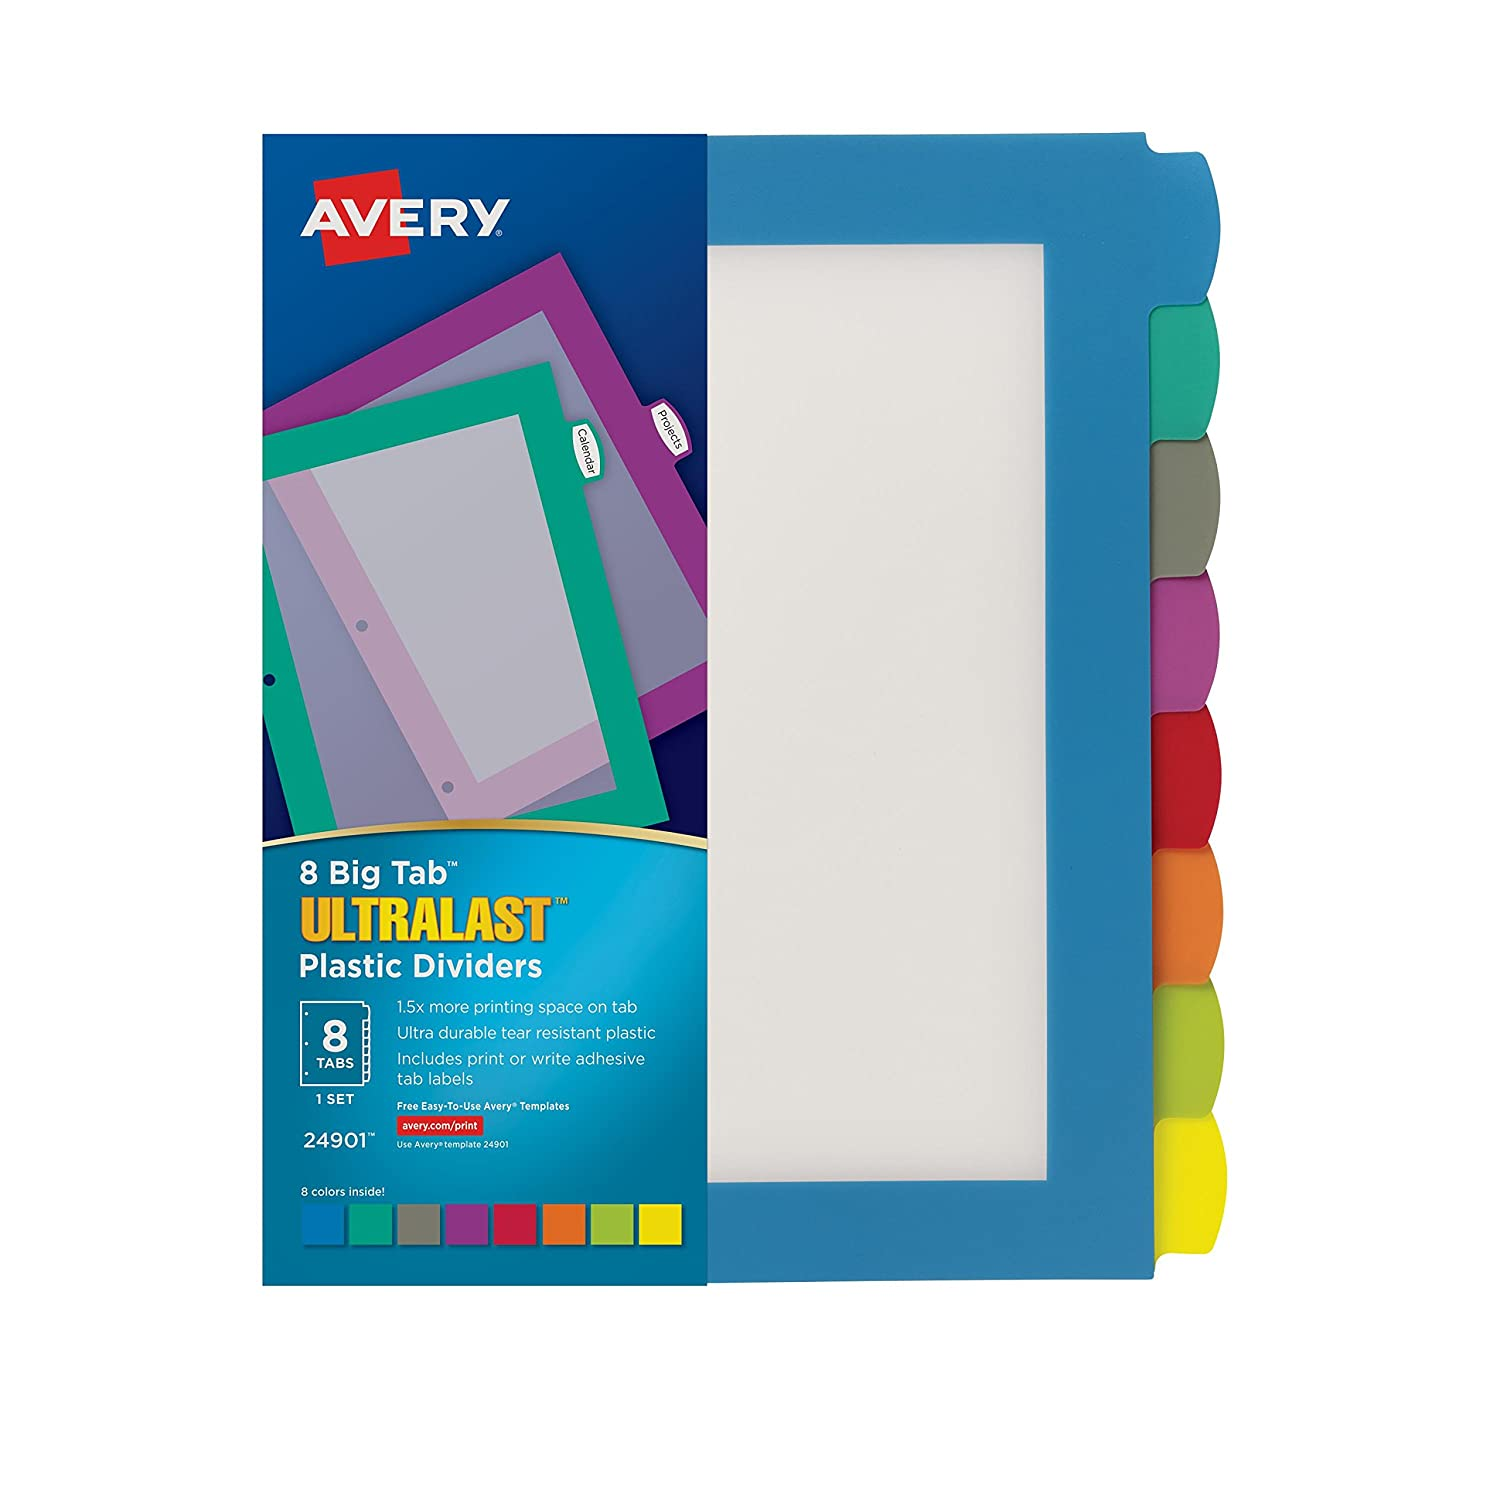 Avery Ultralast Big Tab Plastic Dividers, 8 Tabs, 1 Set, Multicolor (24901) Avery Products Corporation